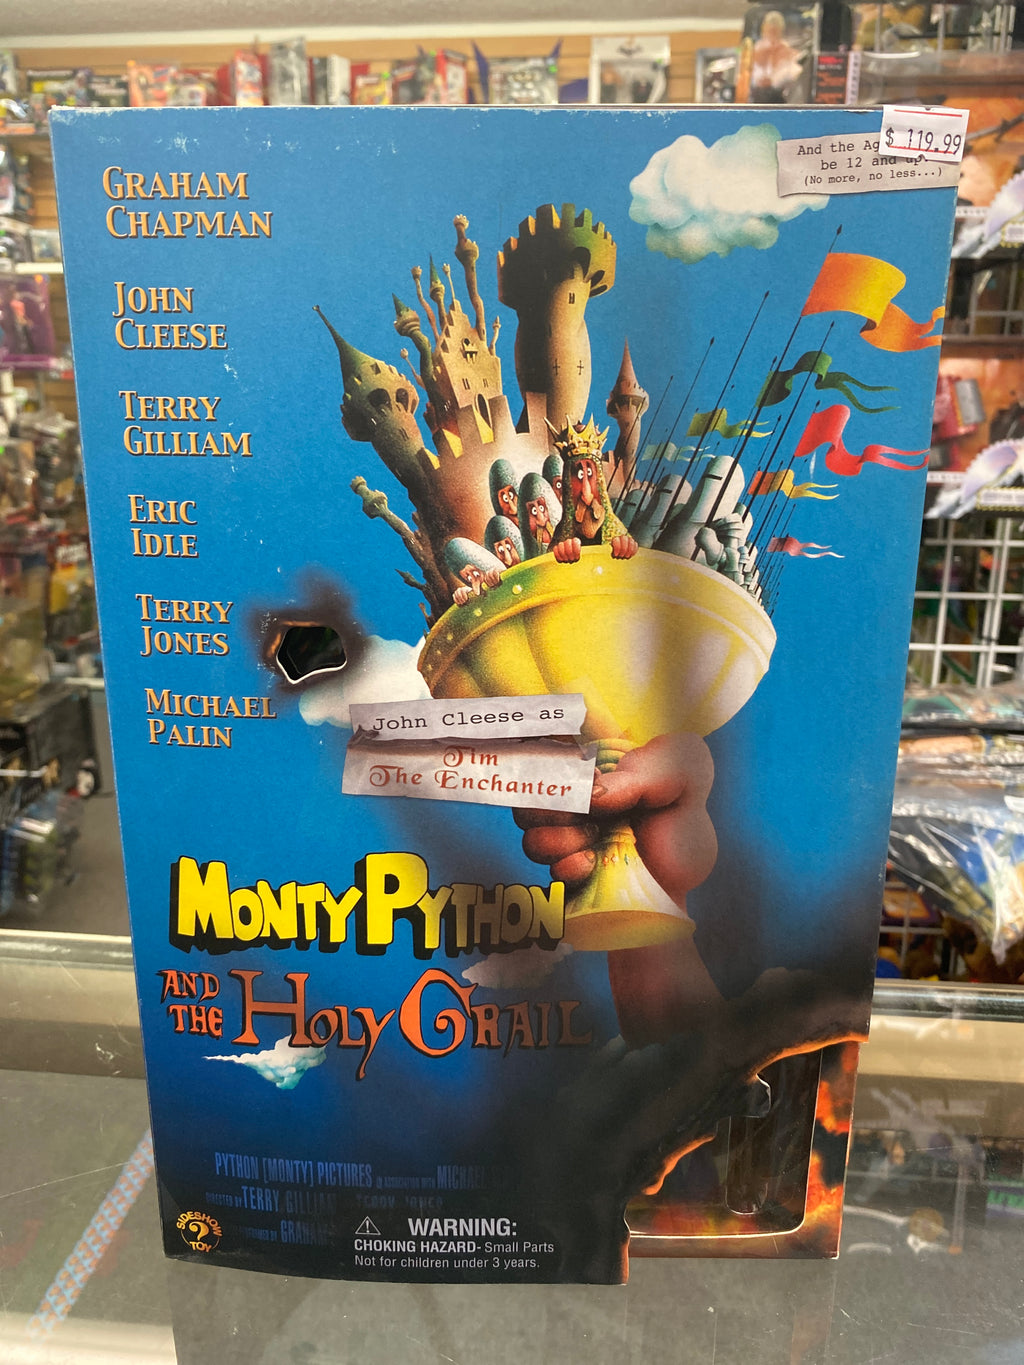 Sideshow Toy Monty Python and the Holy Grail John Cleese as Tim the Enchanter